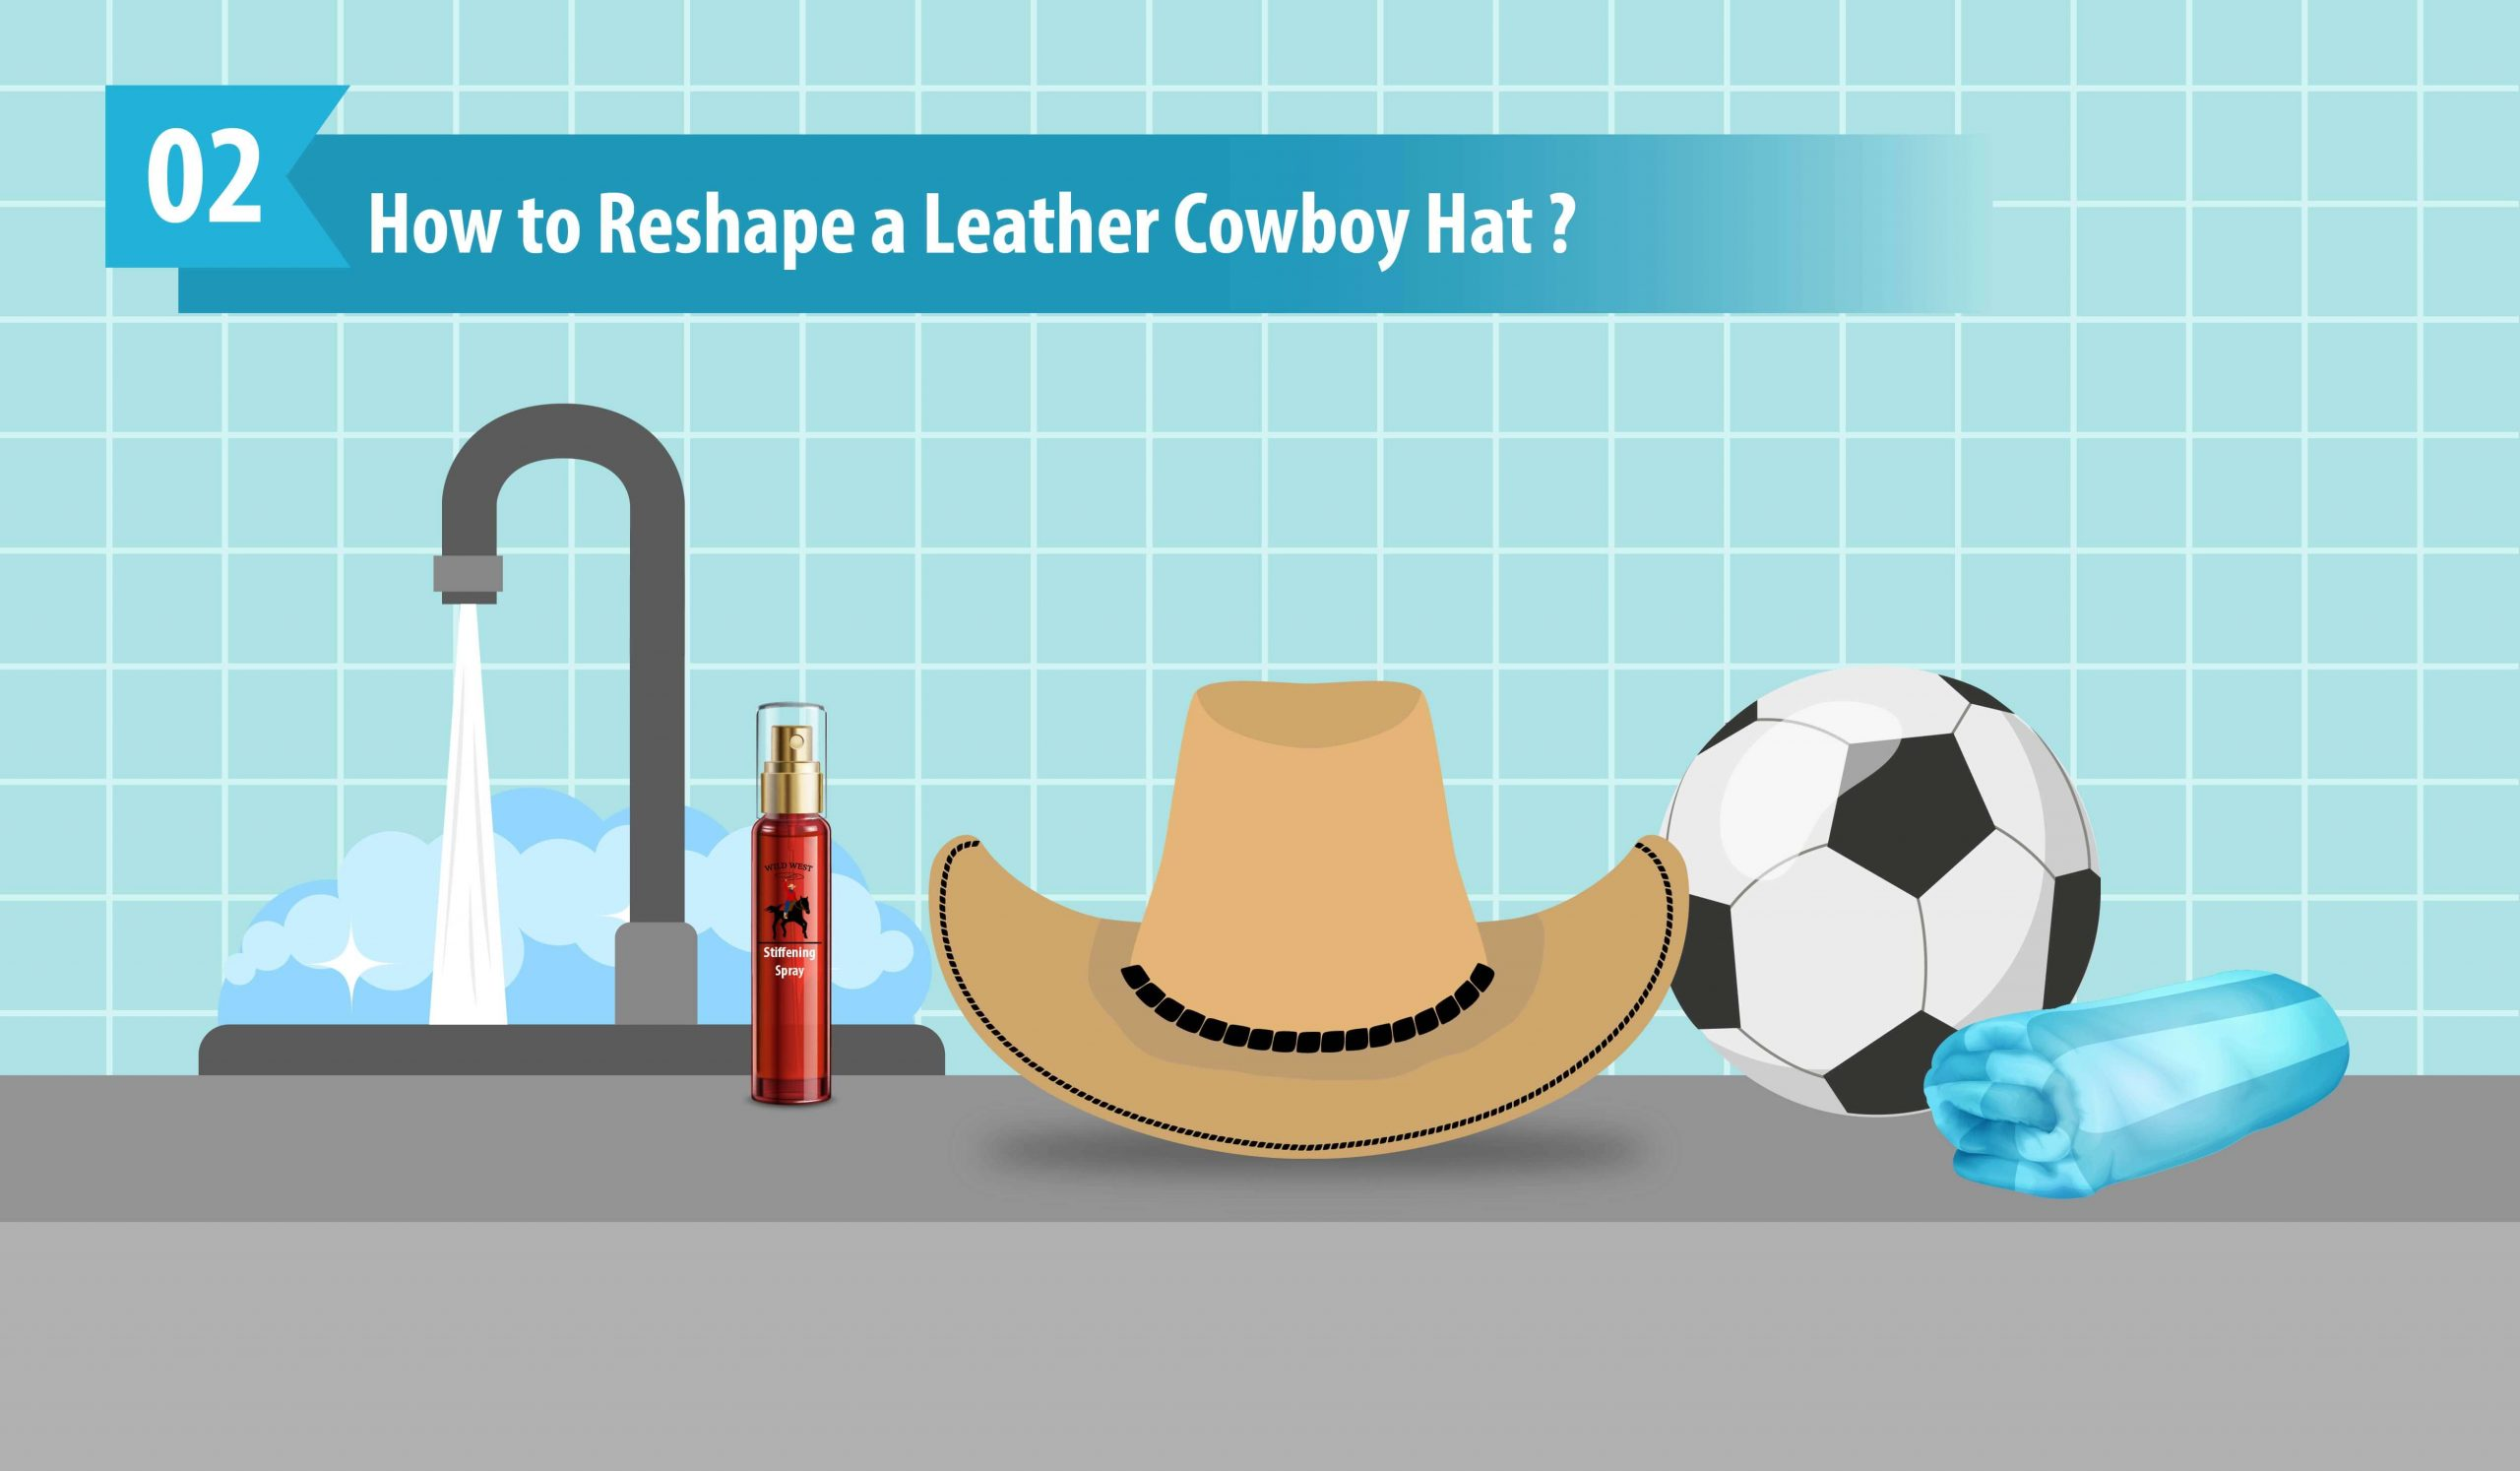 How to Reshape a Leather Cowboy Hat